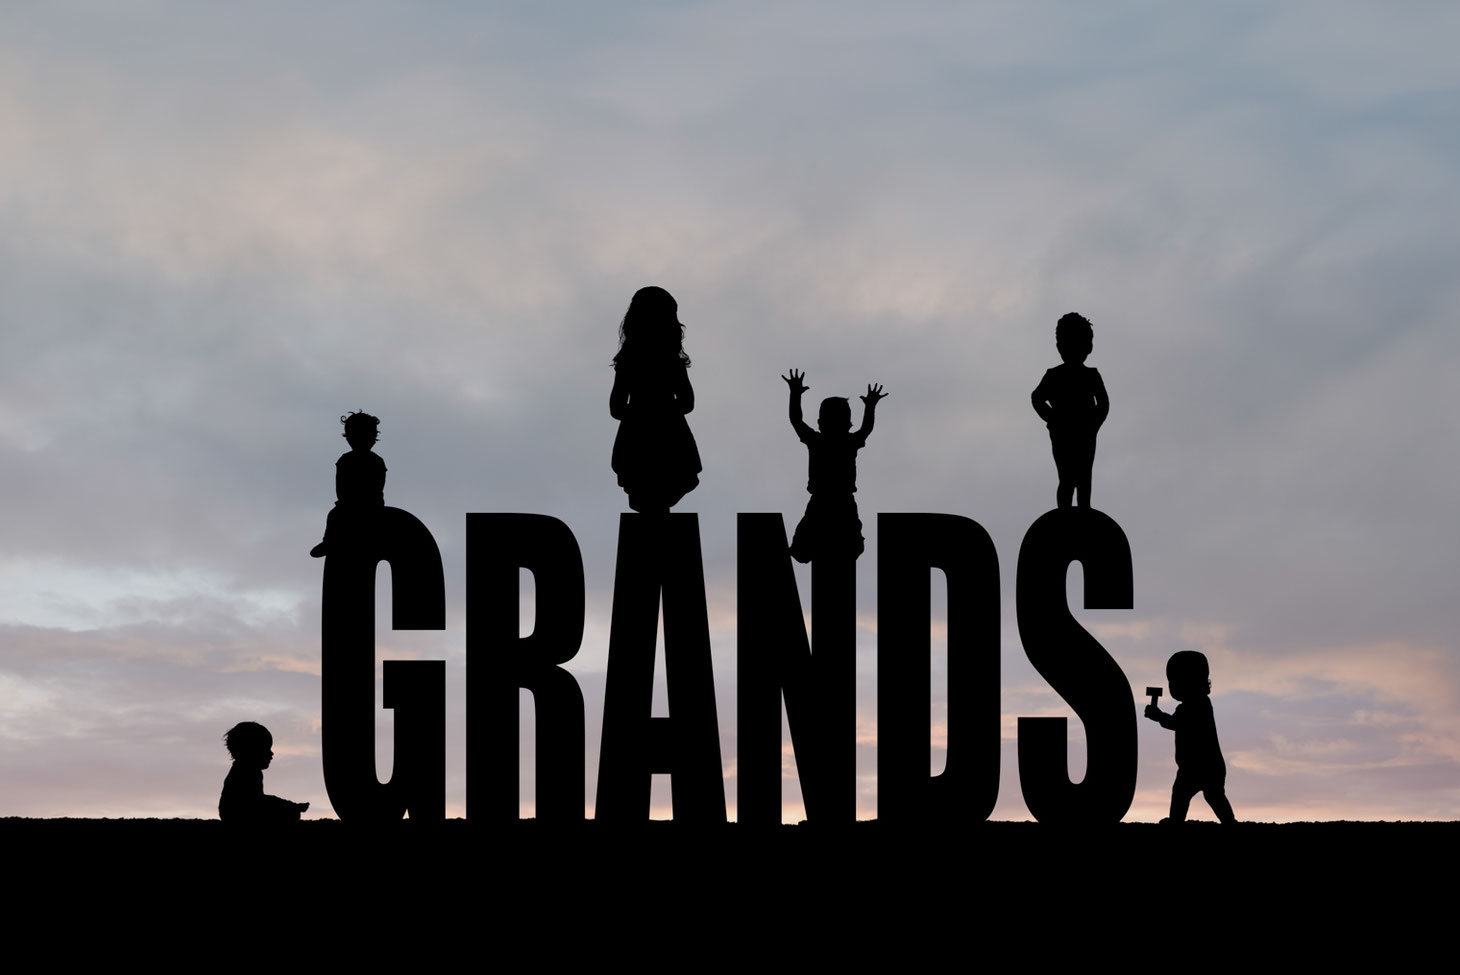 silhouettes of 6 kids on the letters GRANDS. Sky is blue, grey, and pink.